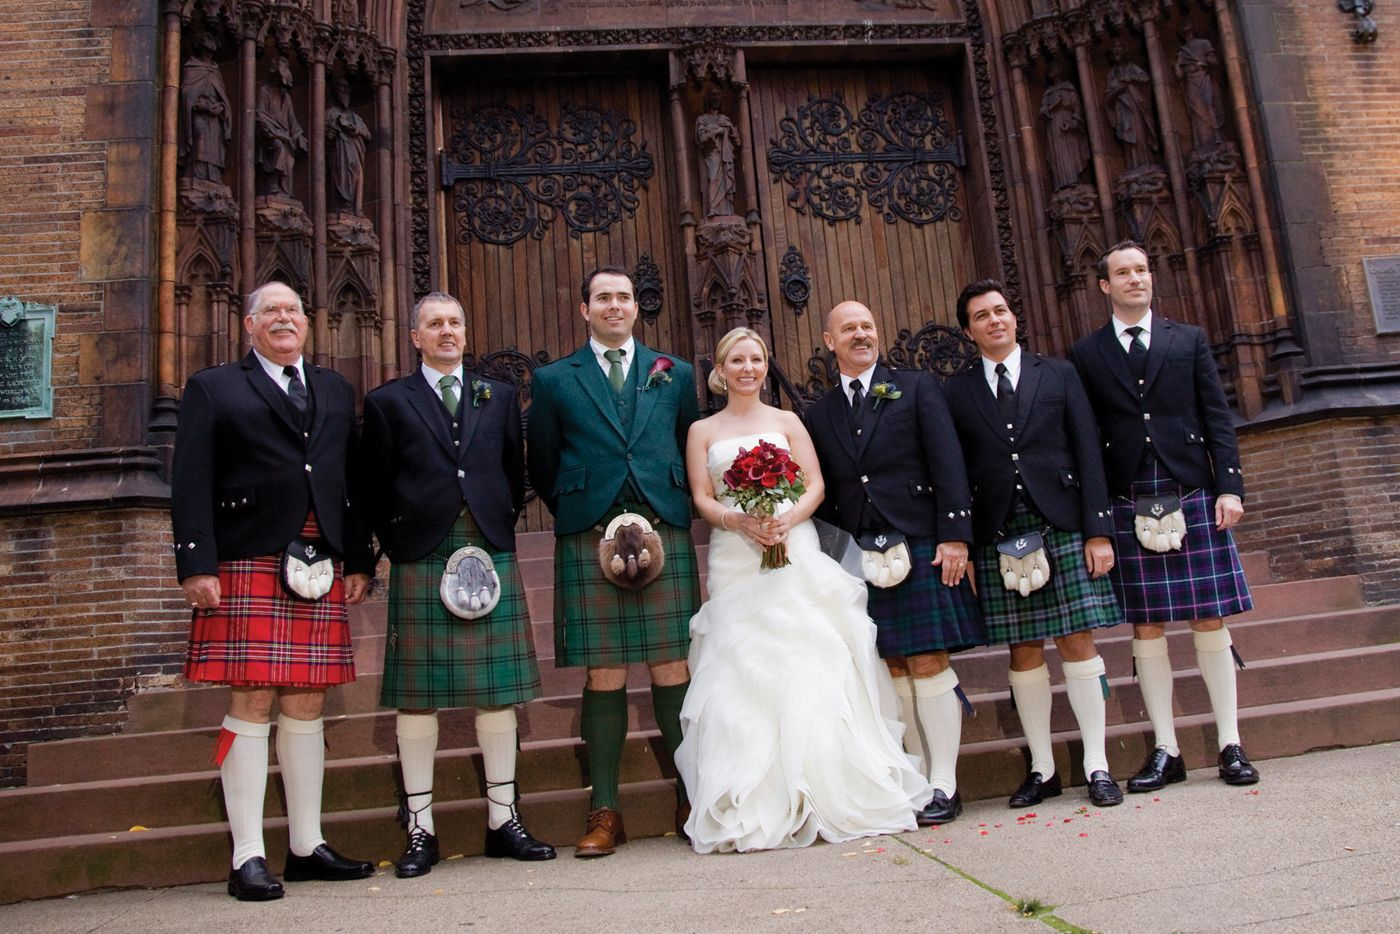 Scottish Wedding Traditions Scottish Wedding Traditions Manhattan Wedding Traditional Wedding